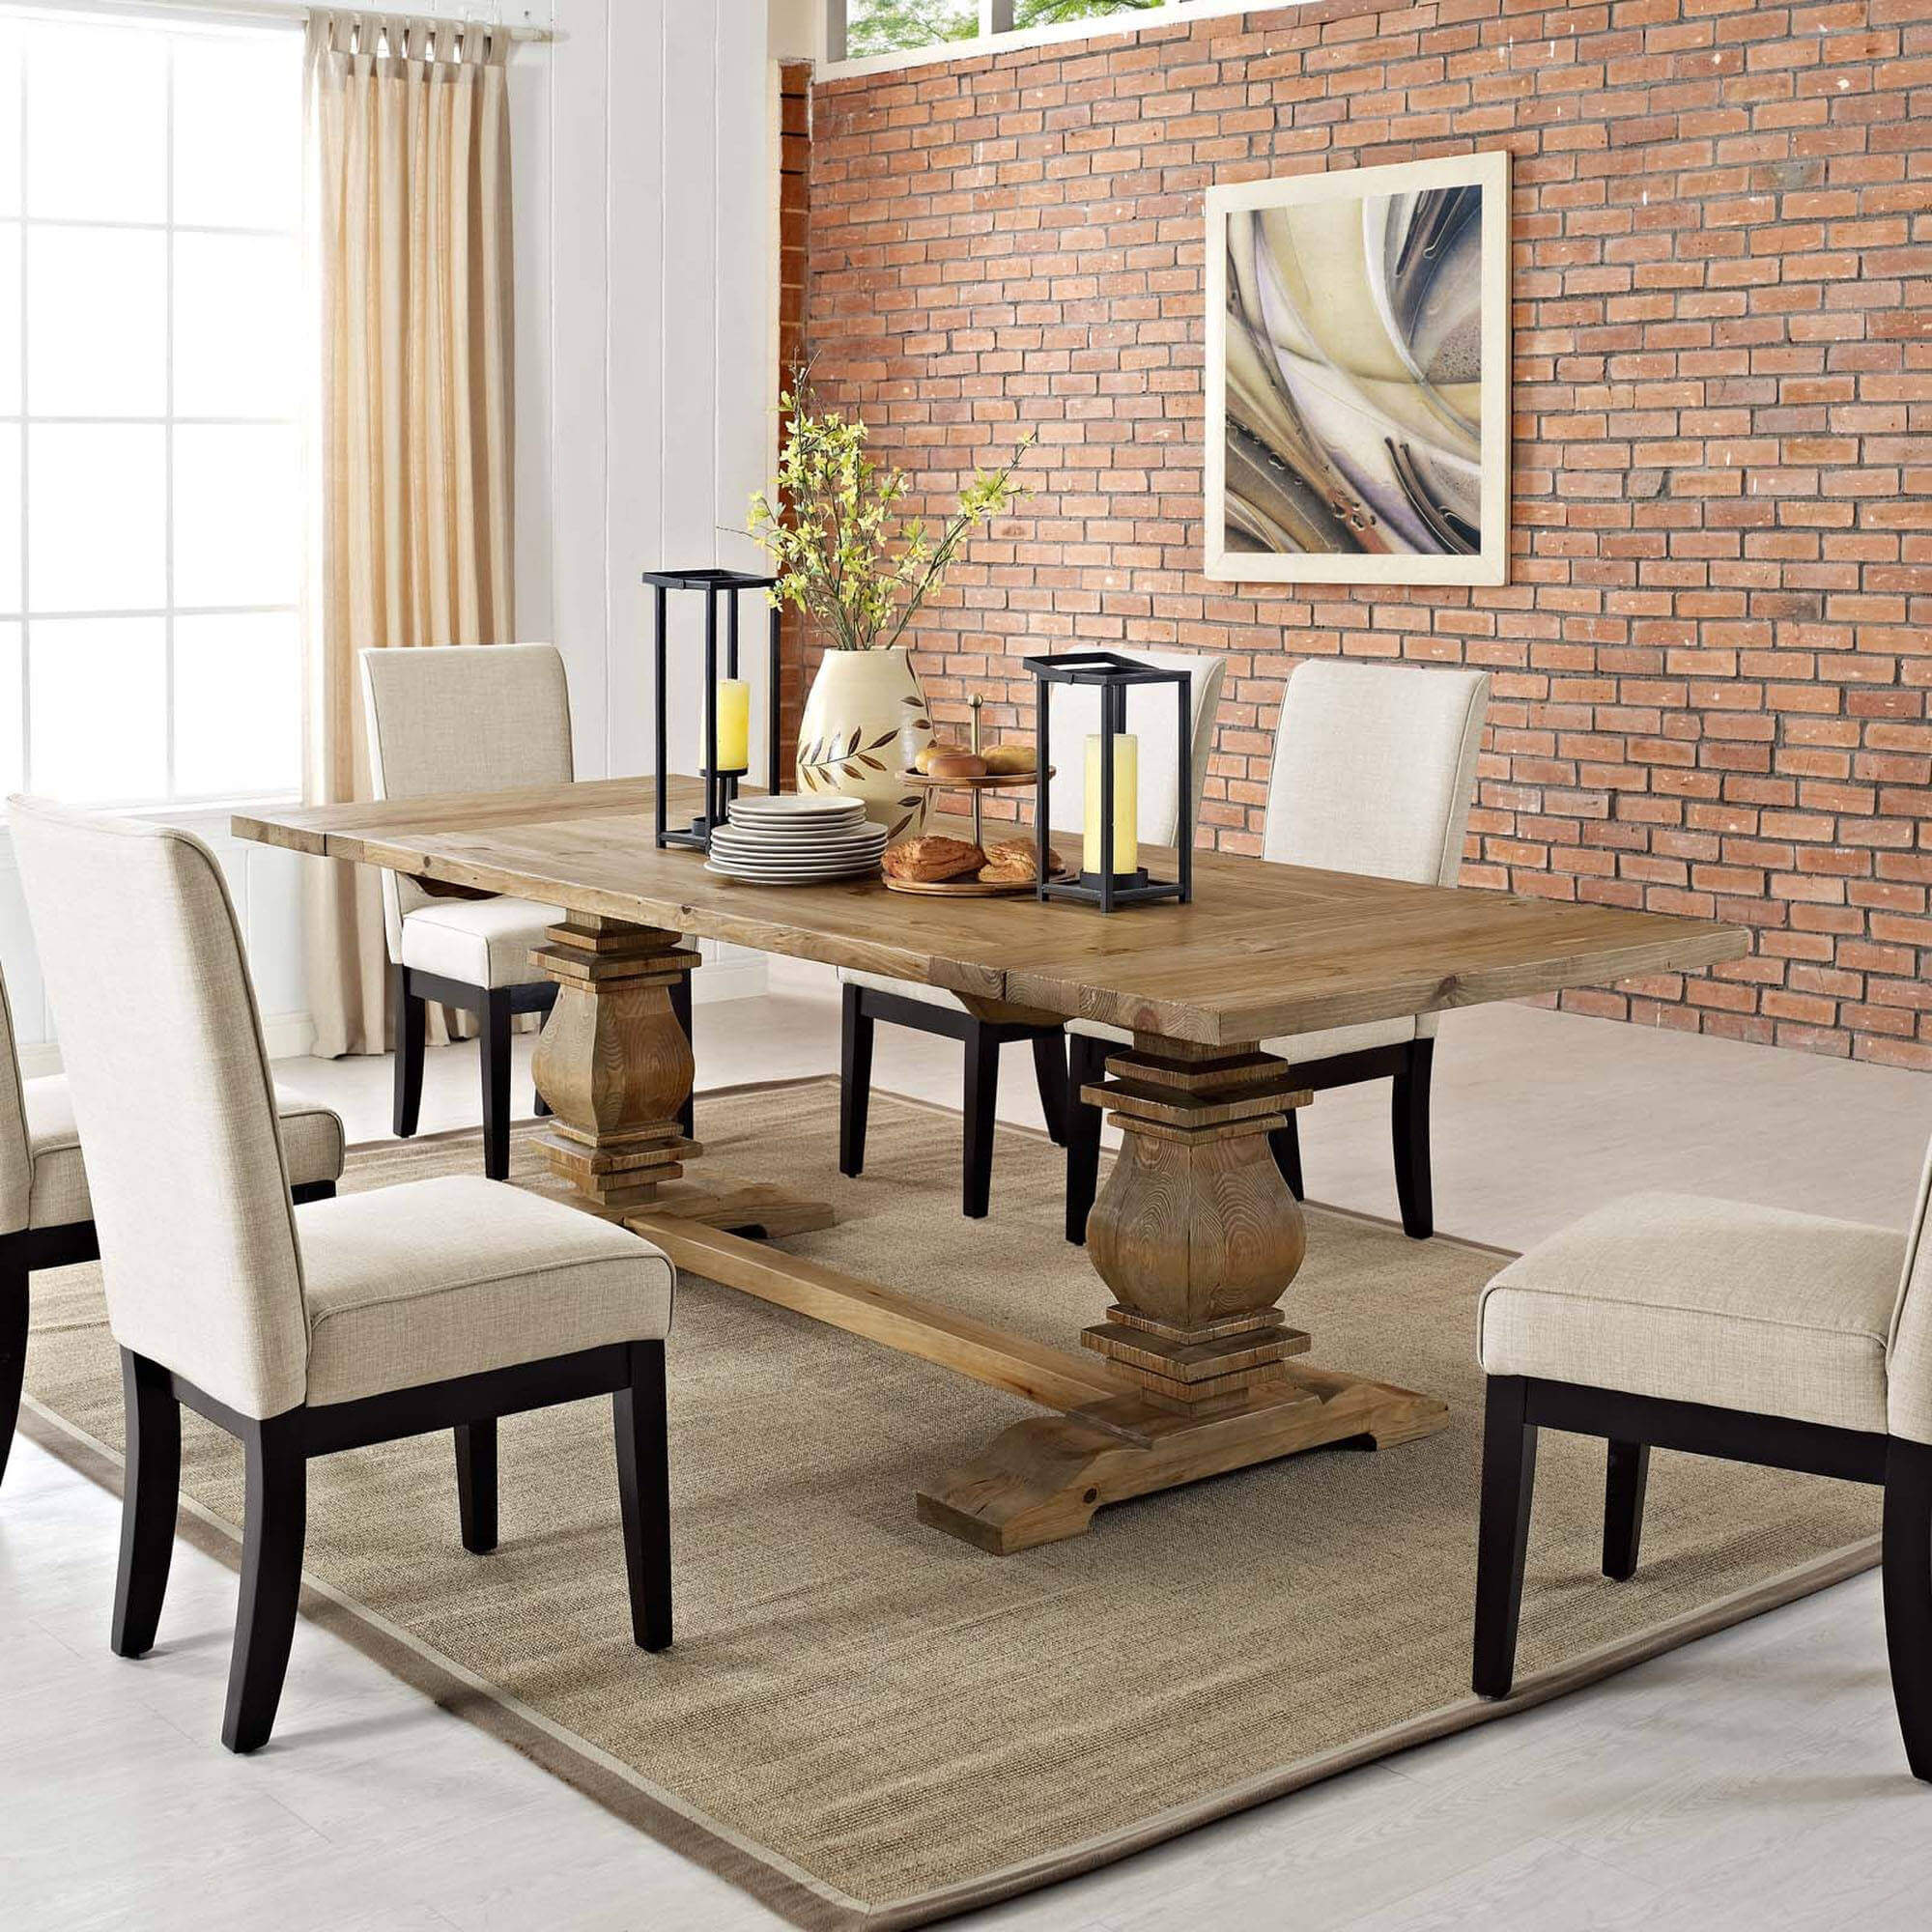 Light wood extendable dining table with solid pine wood